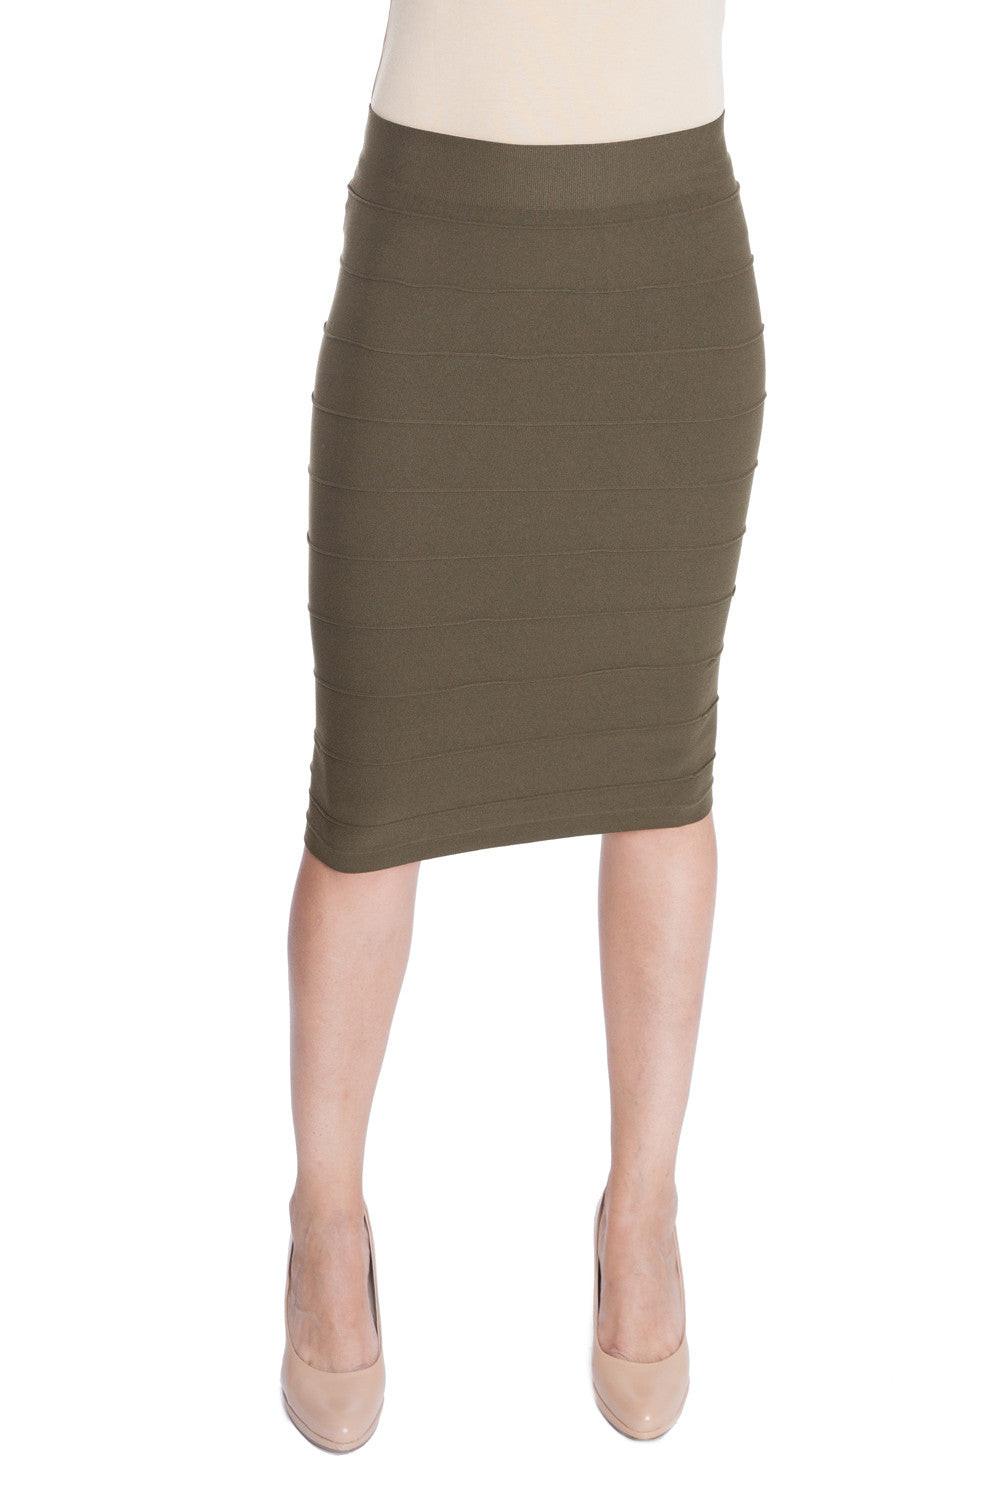 Esteez Seamless Bandage Skirt - Slimfit Stretchy Nylon Pencil Skirt for WOMEN